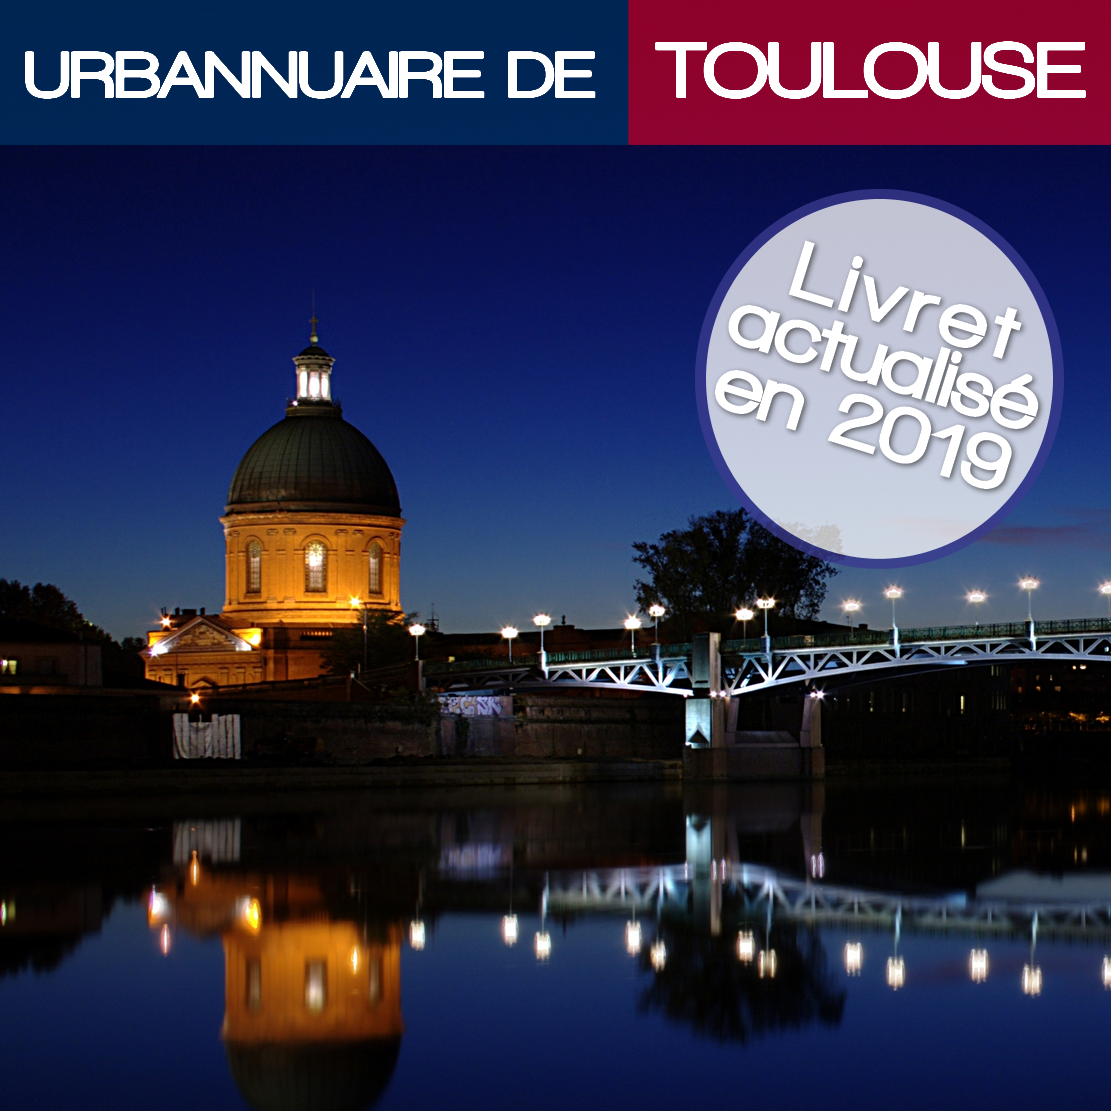 Toulouse | urbannuaire actualise